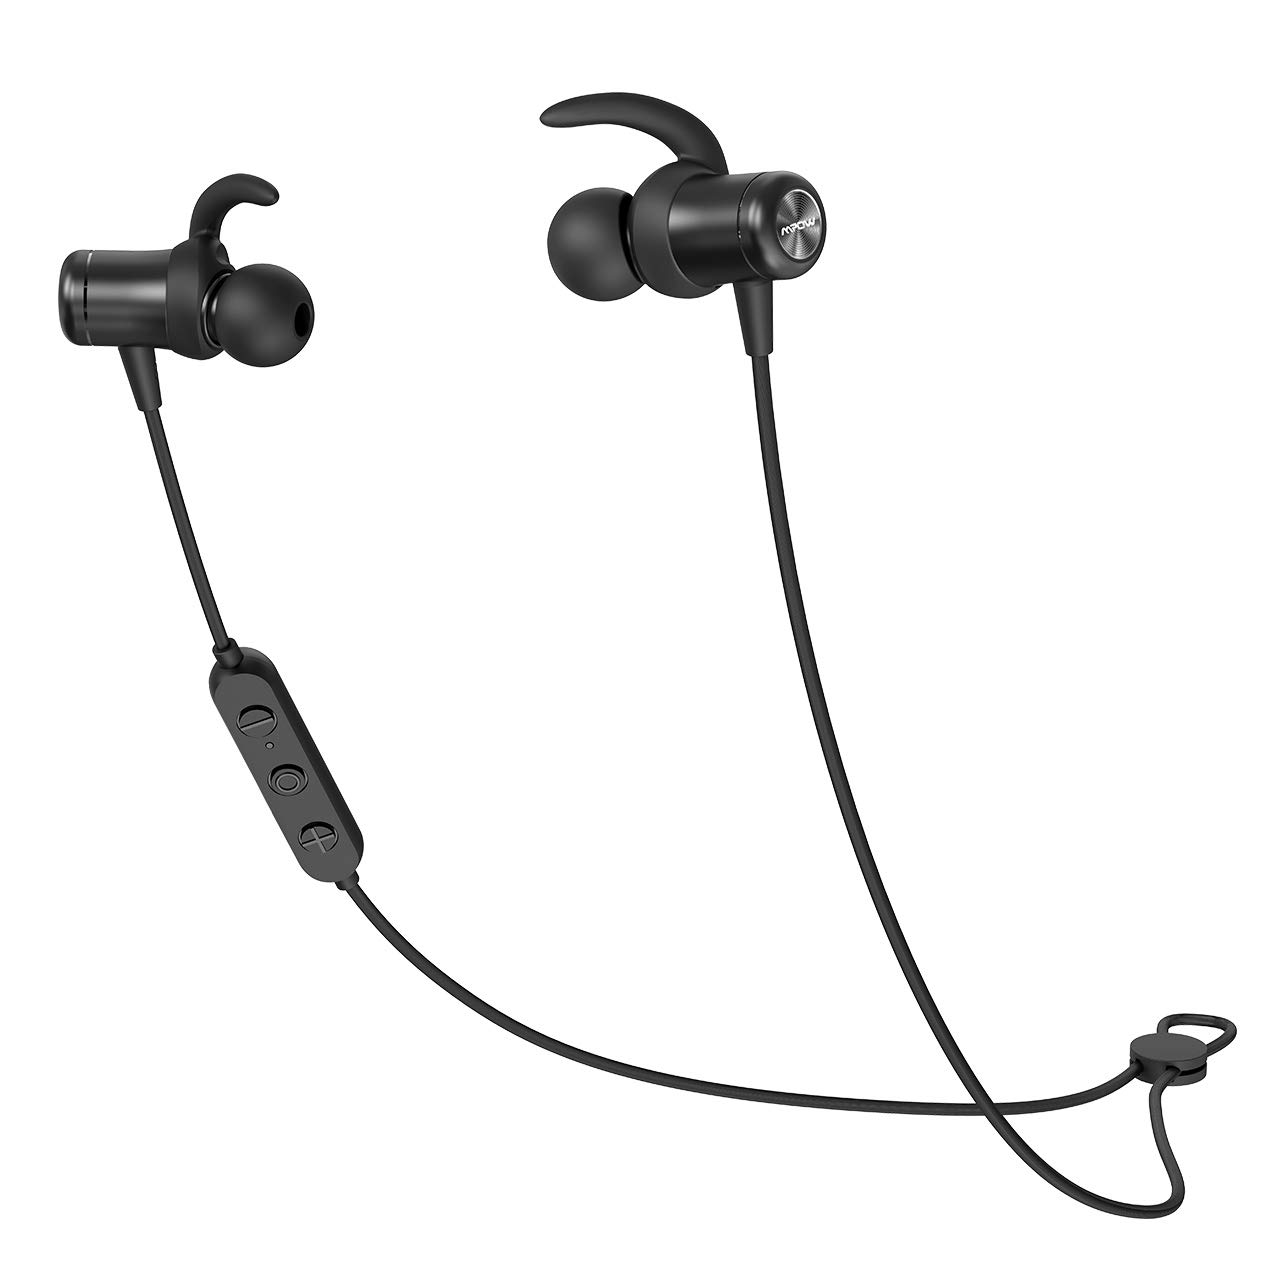 Bluetooth Headphones Mpow Earphones Waterproof